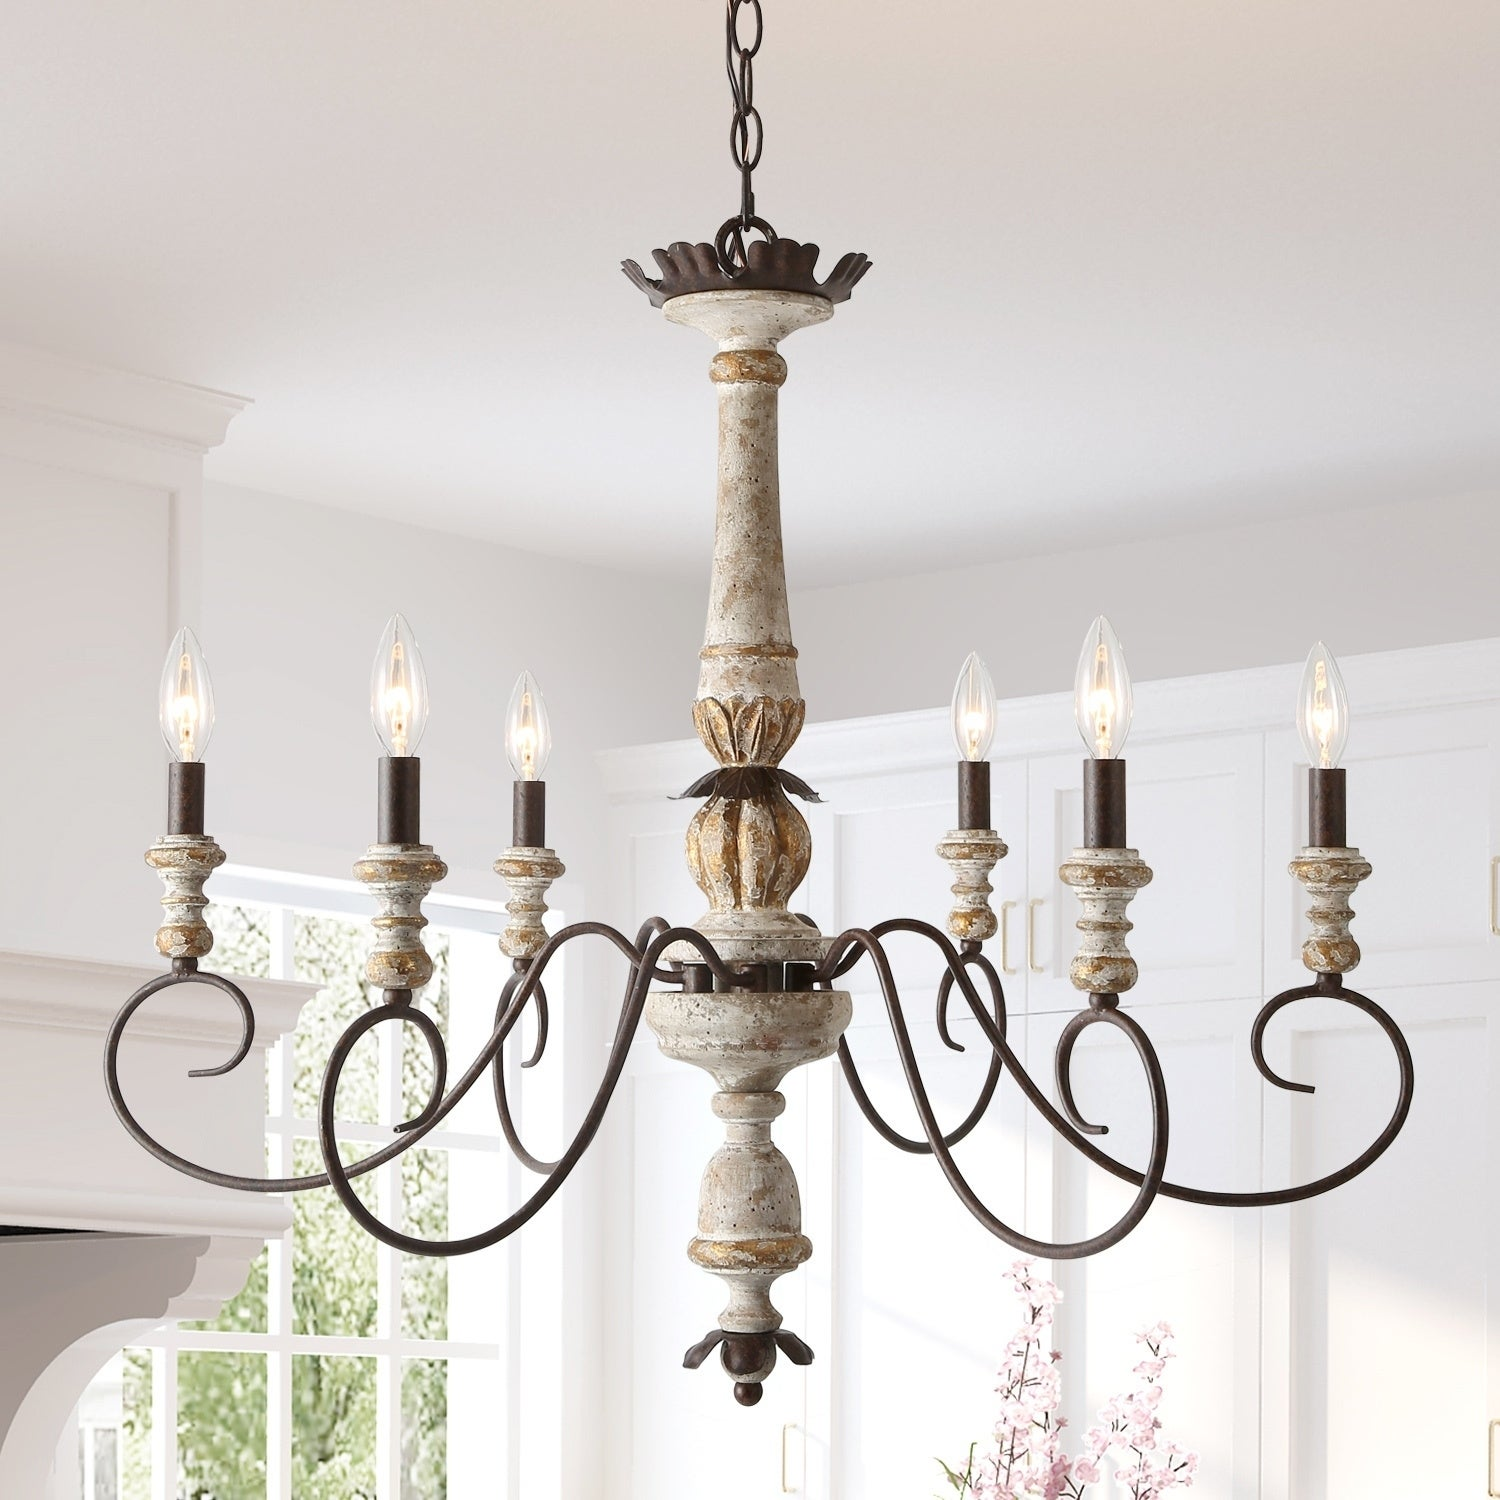 Uban 6 Light Rustic French Country Chandeliers Ceiling Lights On Sale Overstock 27744472